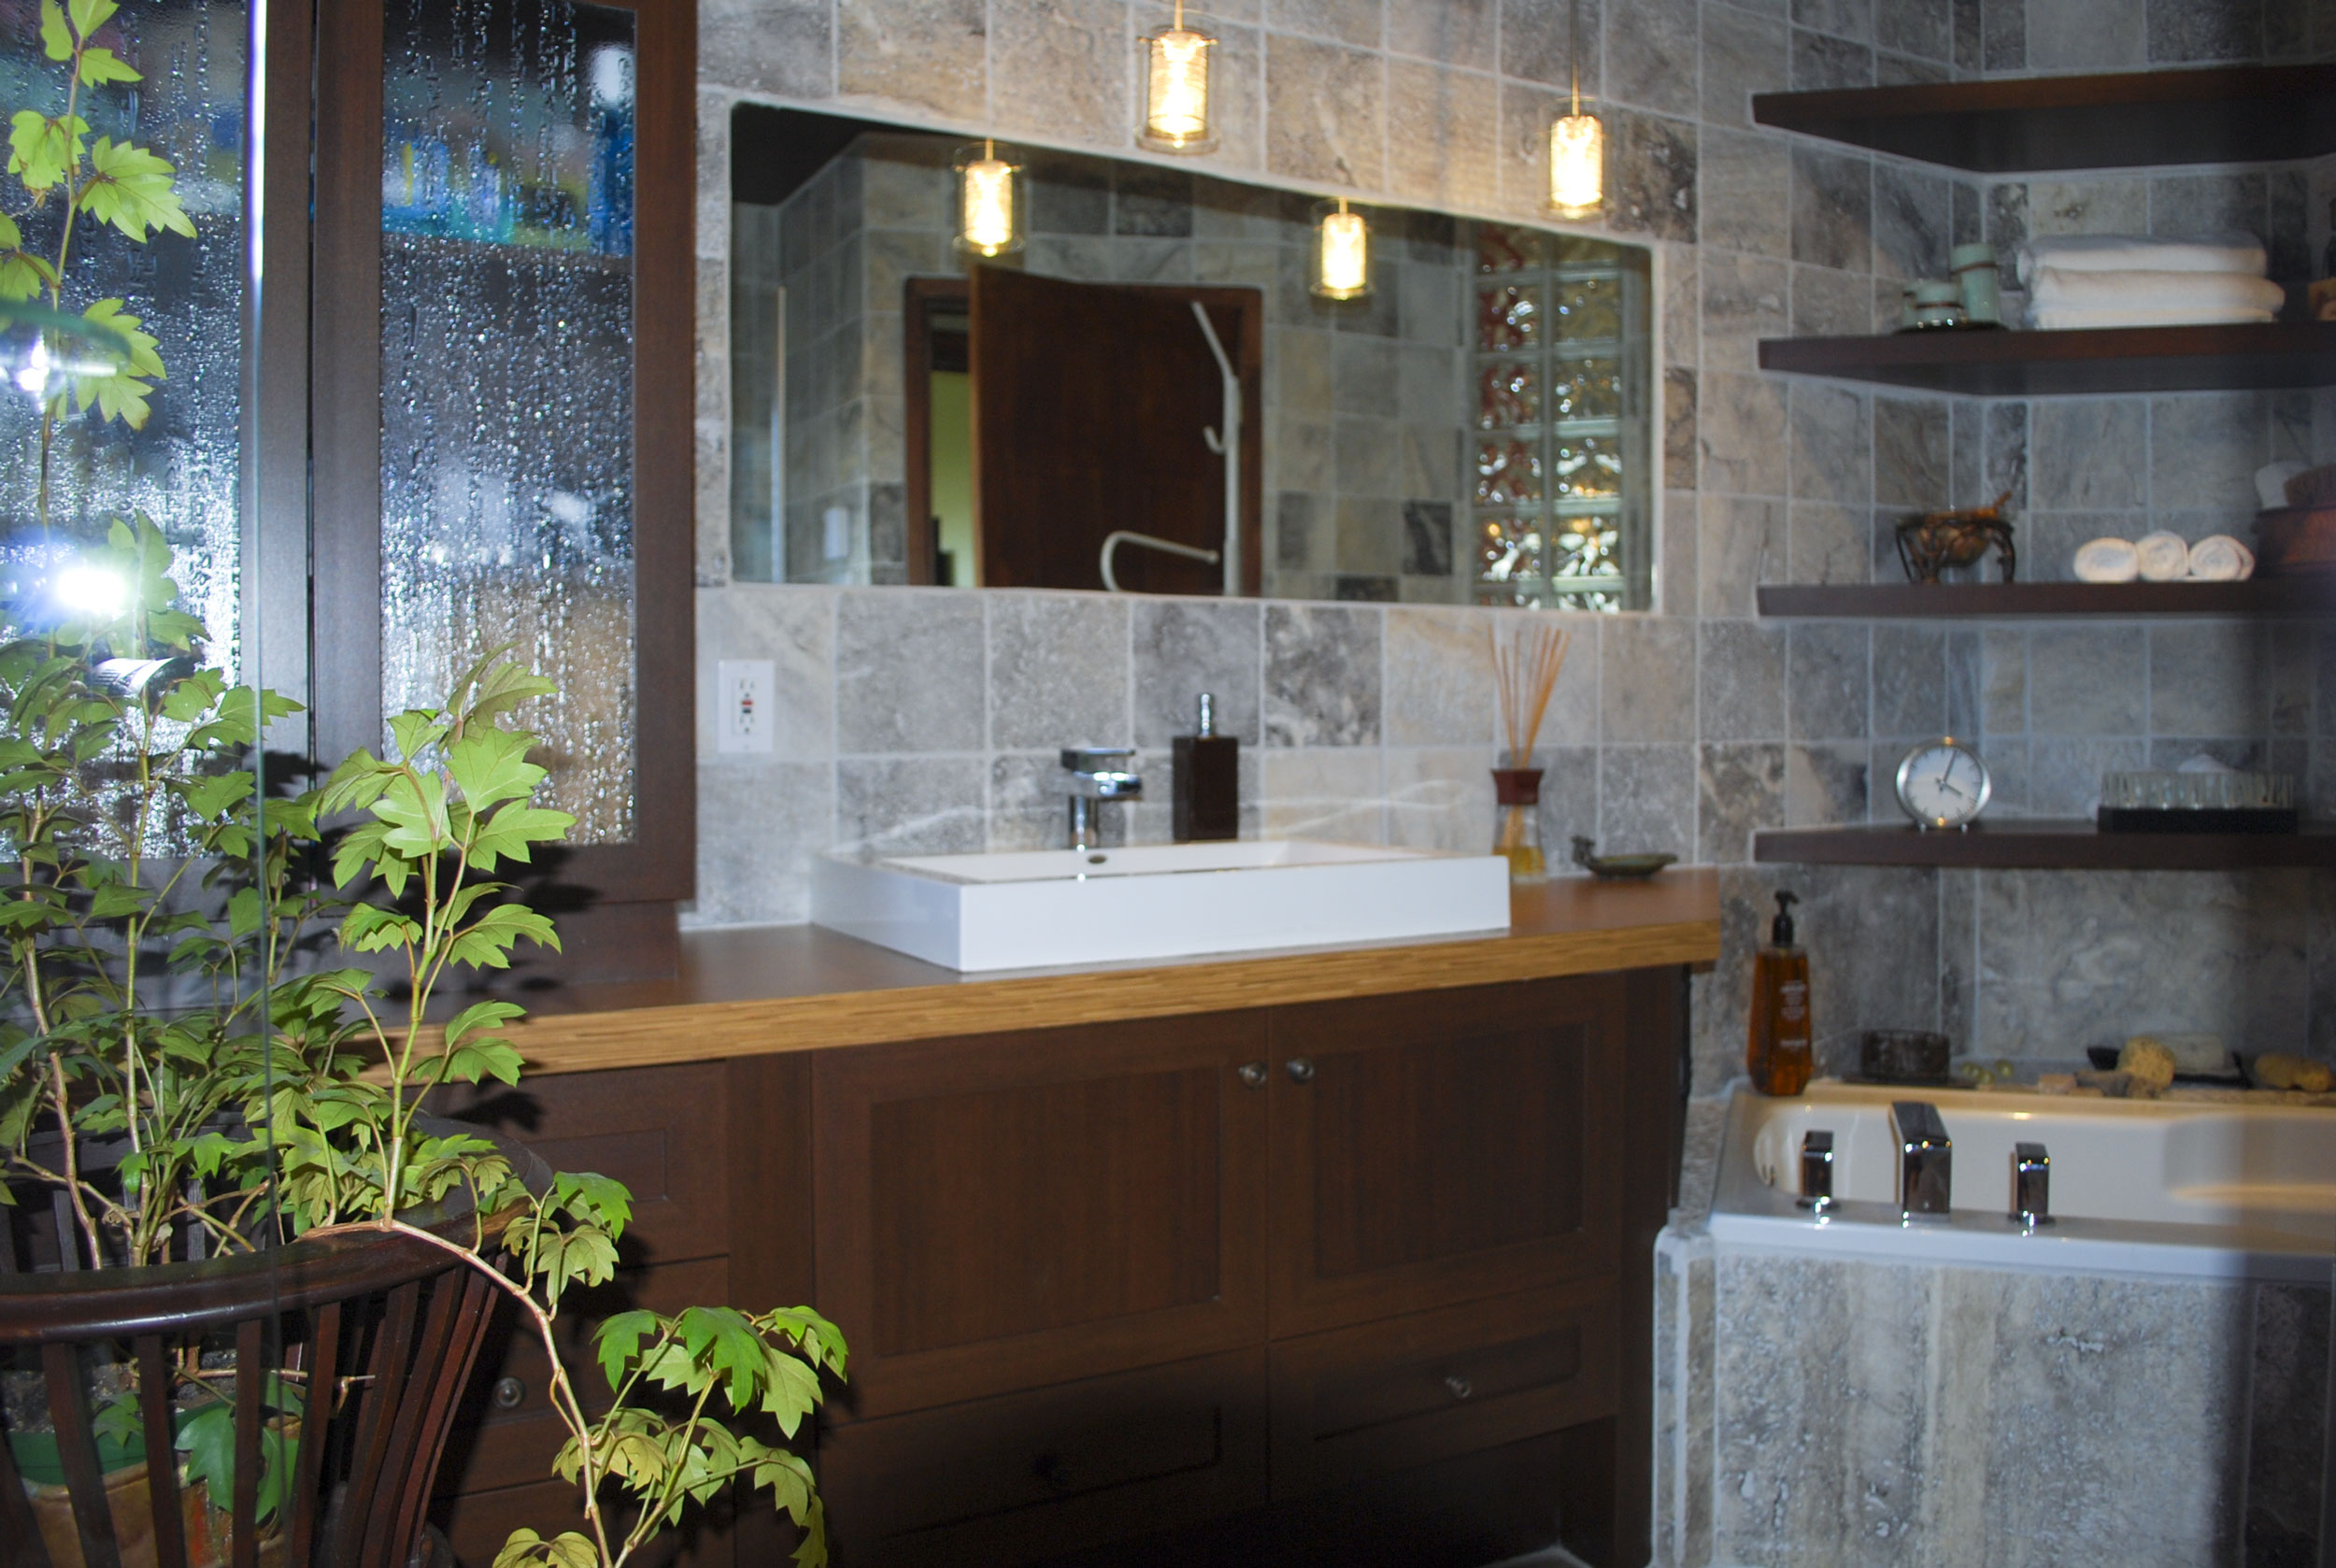 Design interieur salle de bain st jerome 2 laurentides for Designer interieur montreal